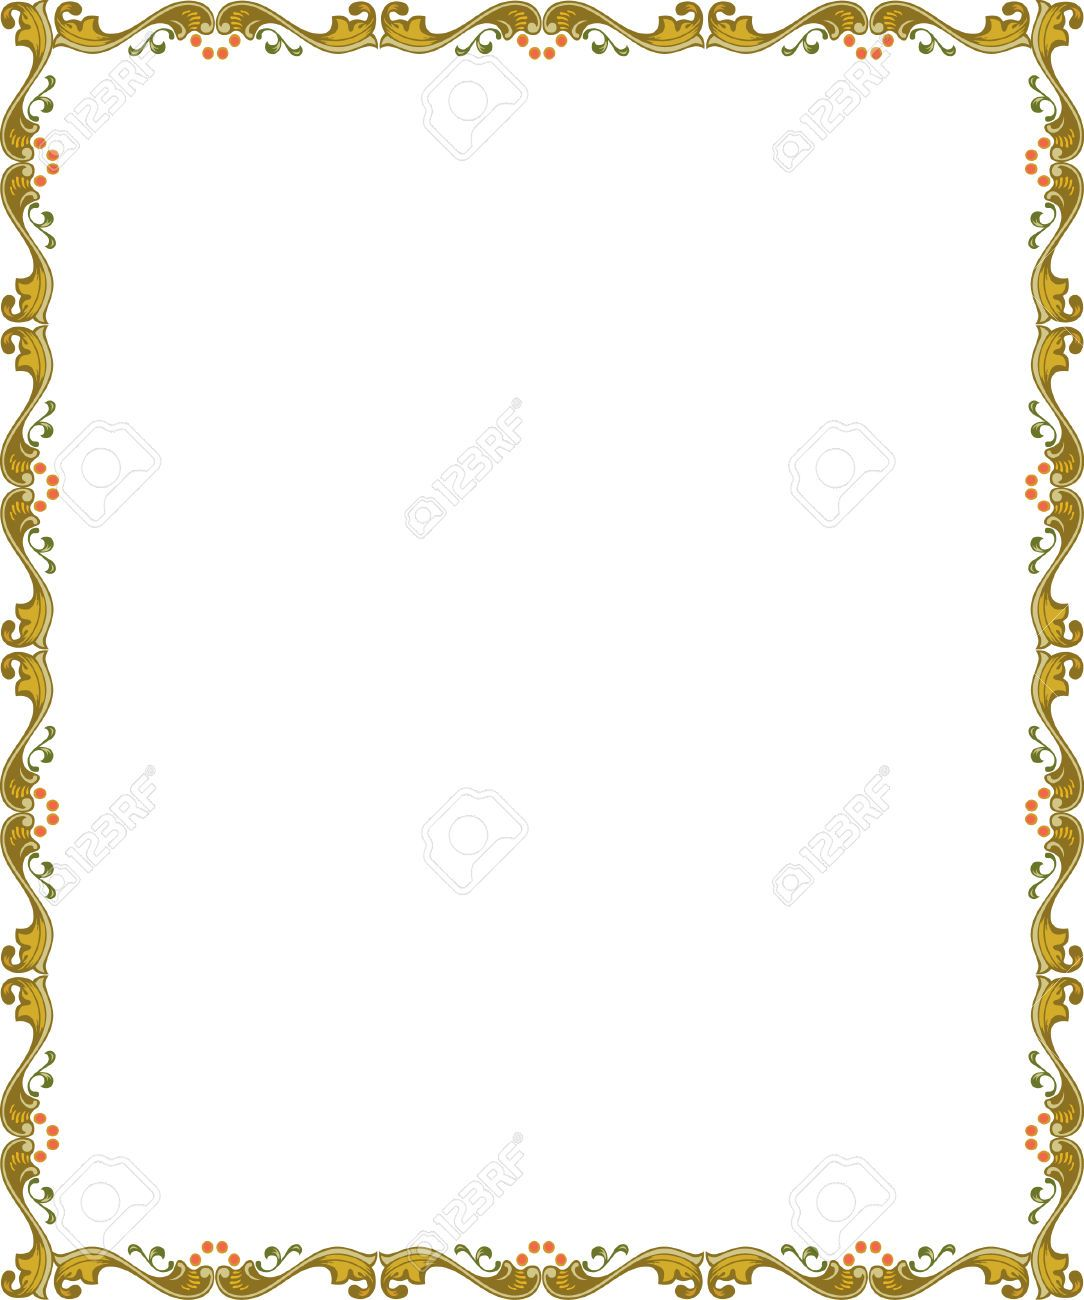 image result for thin certificate borders word邊框 pinte